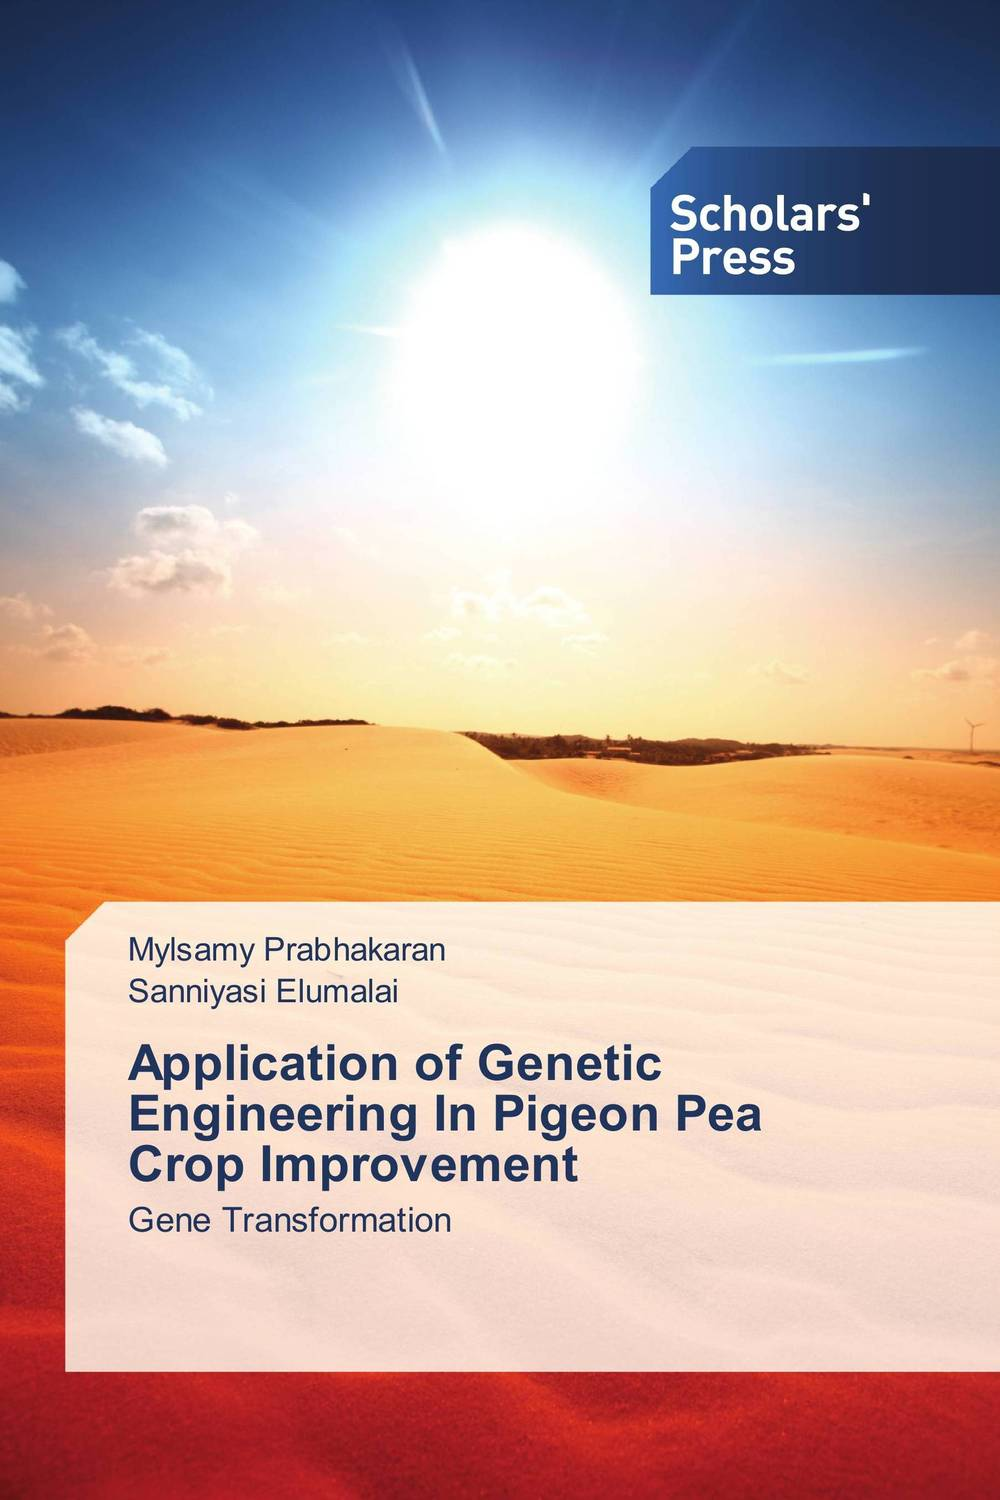 Application of Genetic Engineering In Pigeon Pea Crop Improvement аксессуары для раций diamond 805s dualband 5 sma baofeng tyt wouxun srh805s